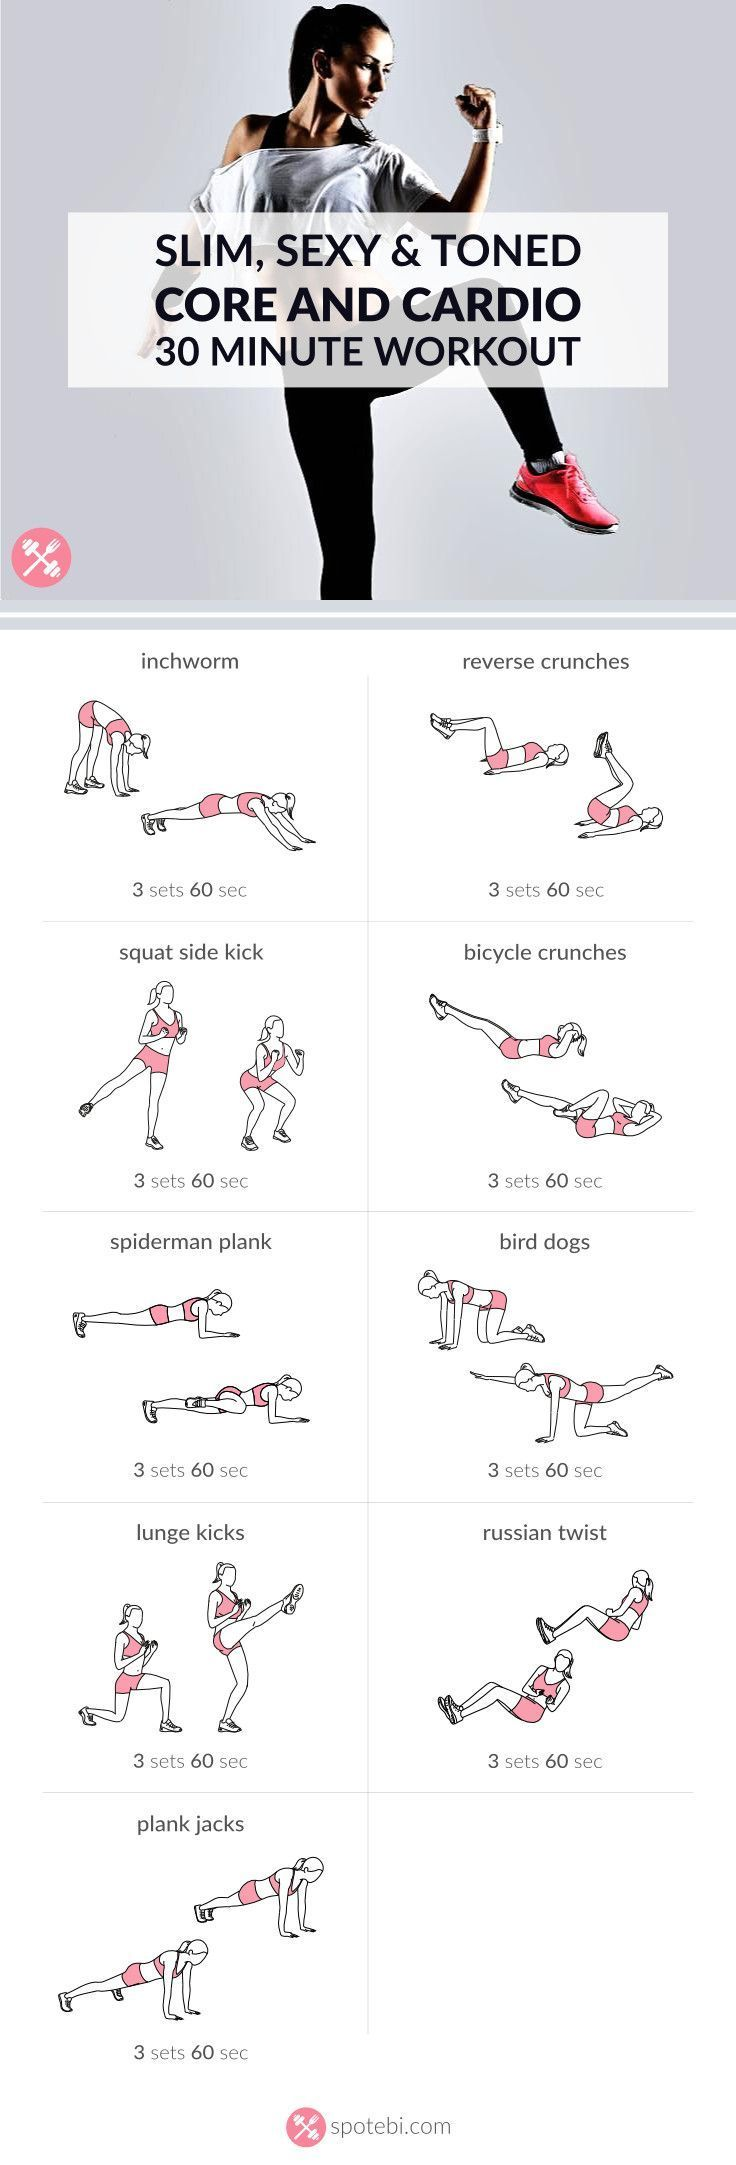 Work your abs, obliques and lower back with this core and cardio workout. Increase your aerobic fitness at home and get a toned, sculpted and slim belly.: